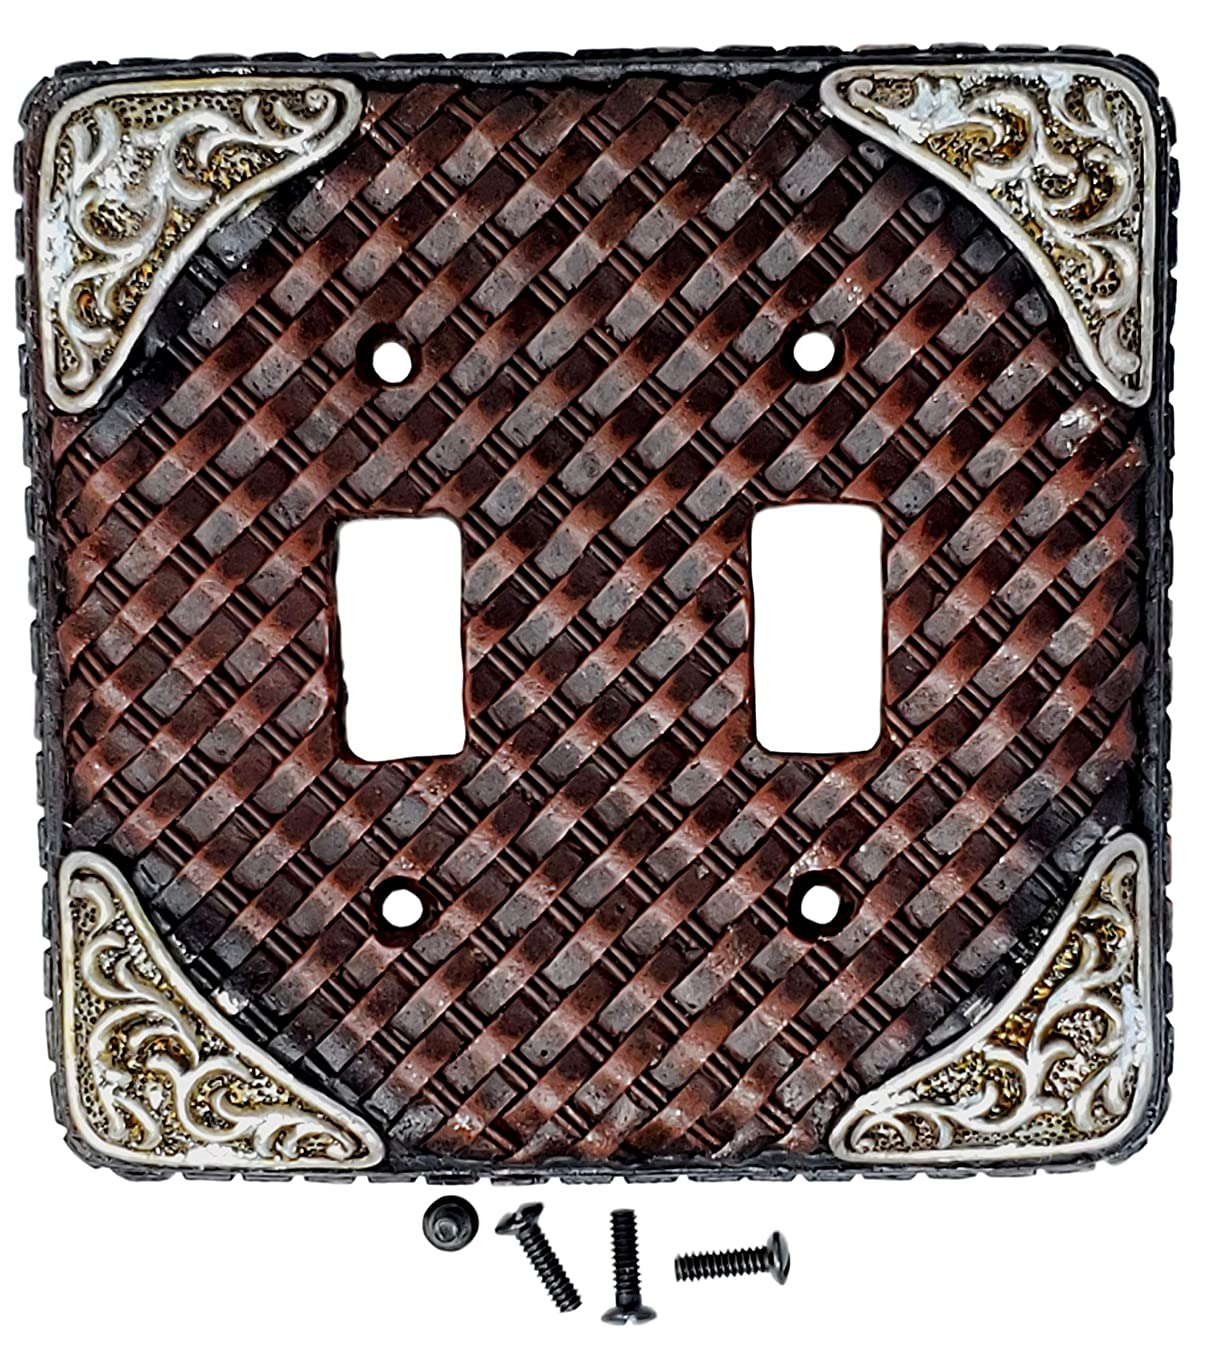 LEATHER DOUBLE SWITCH PLATE COVER